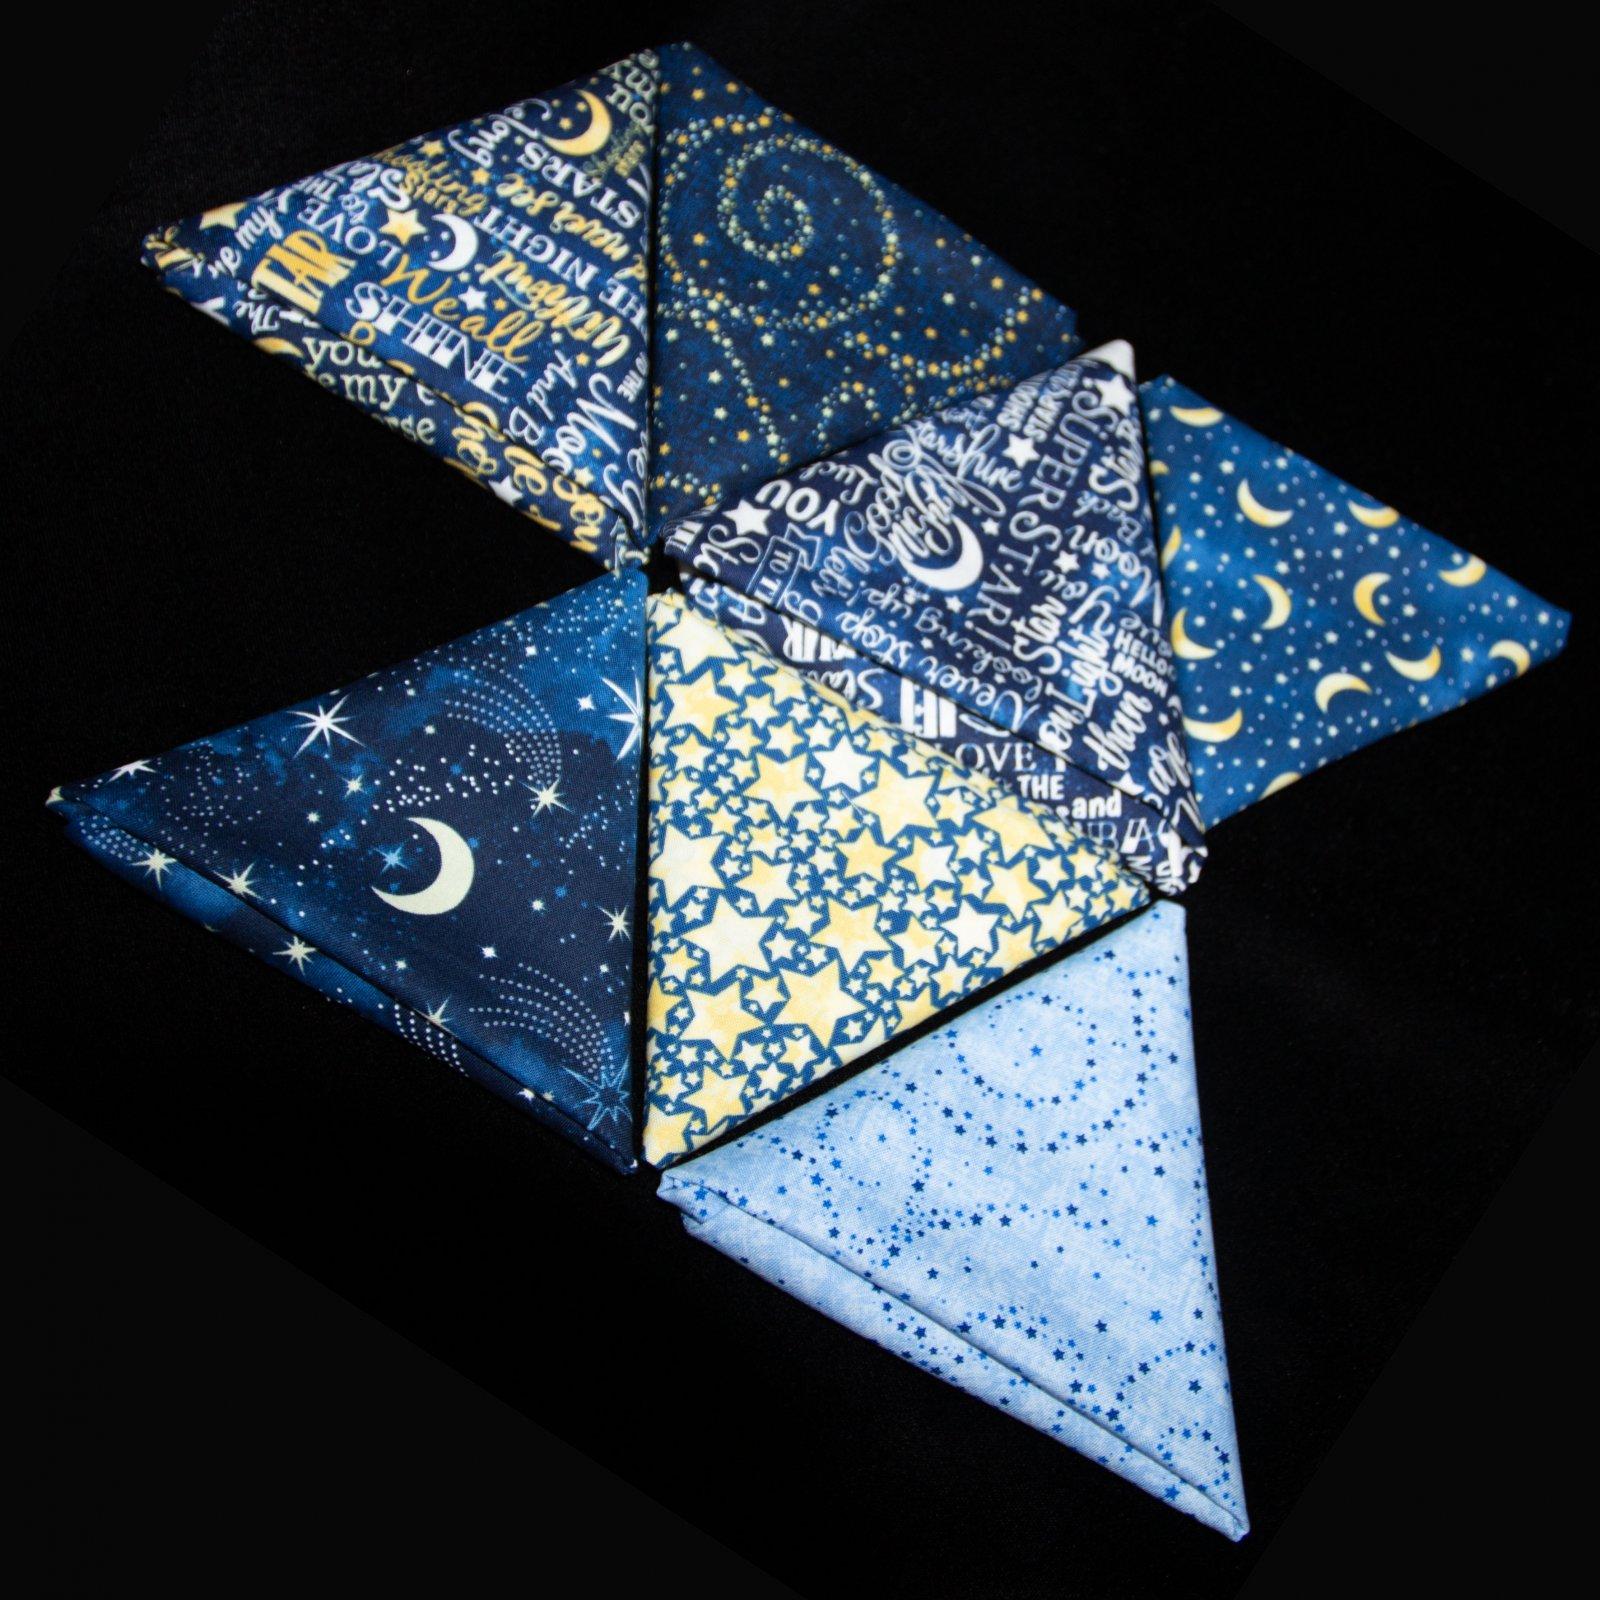 I Love You to the Moon and Back 9 Fat Quarter Bundle